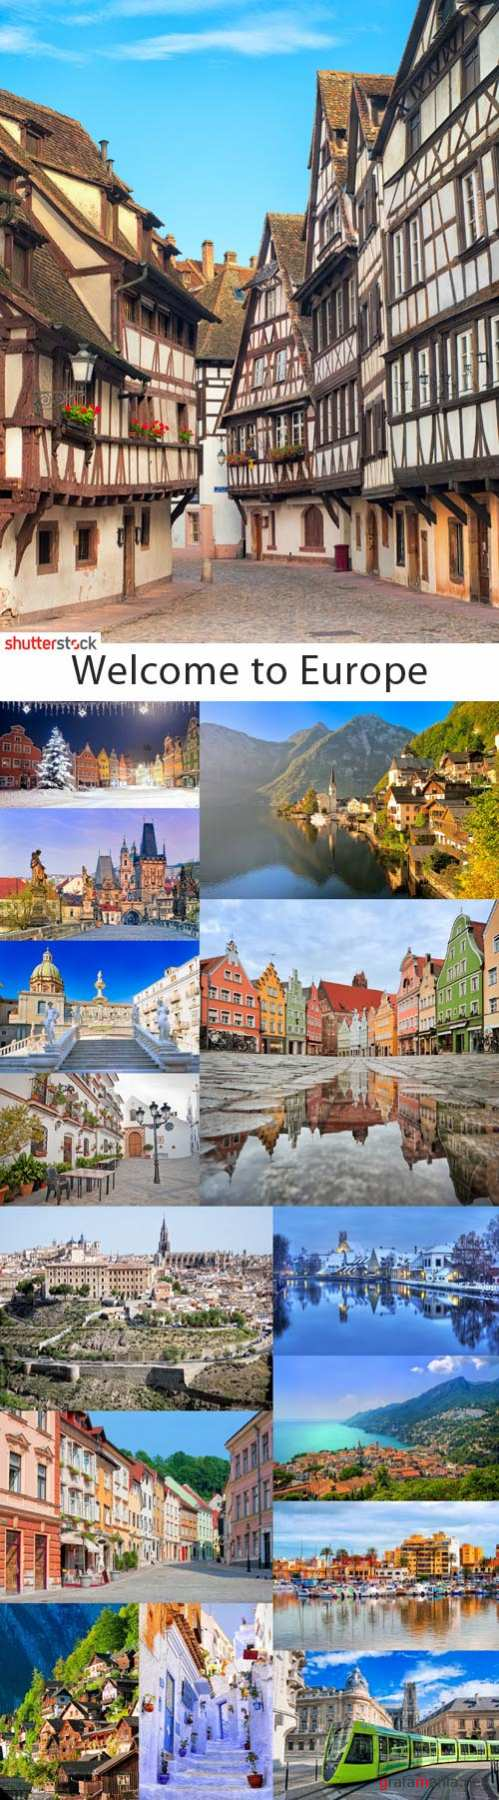 Welcome to Europe - 25 HQ Stock Photo